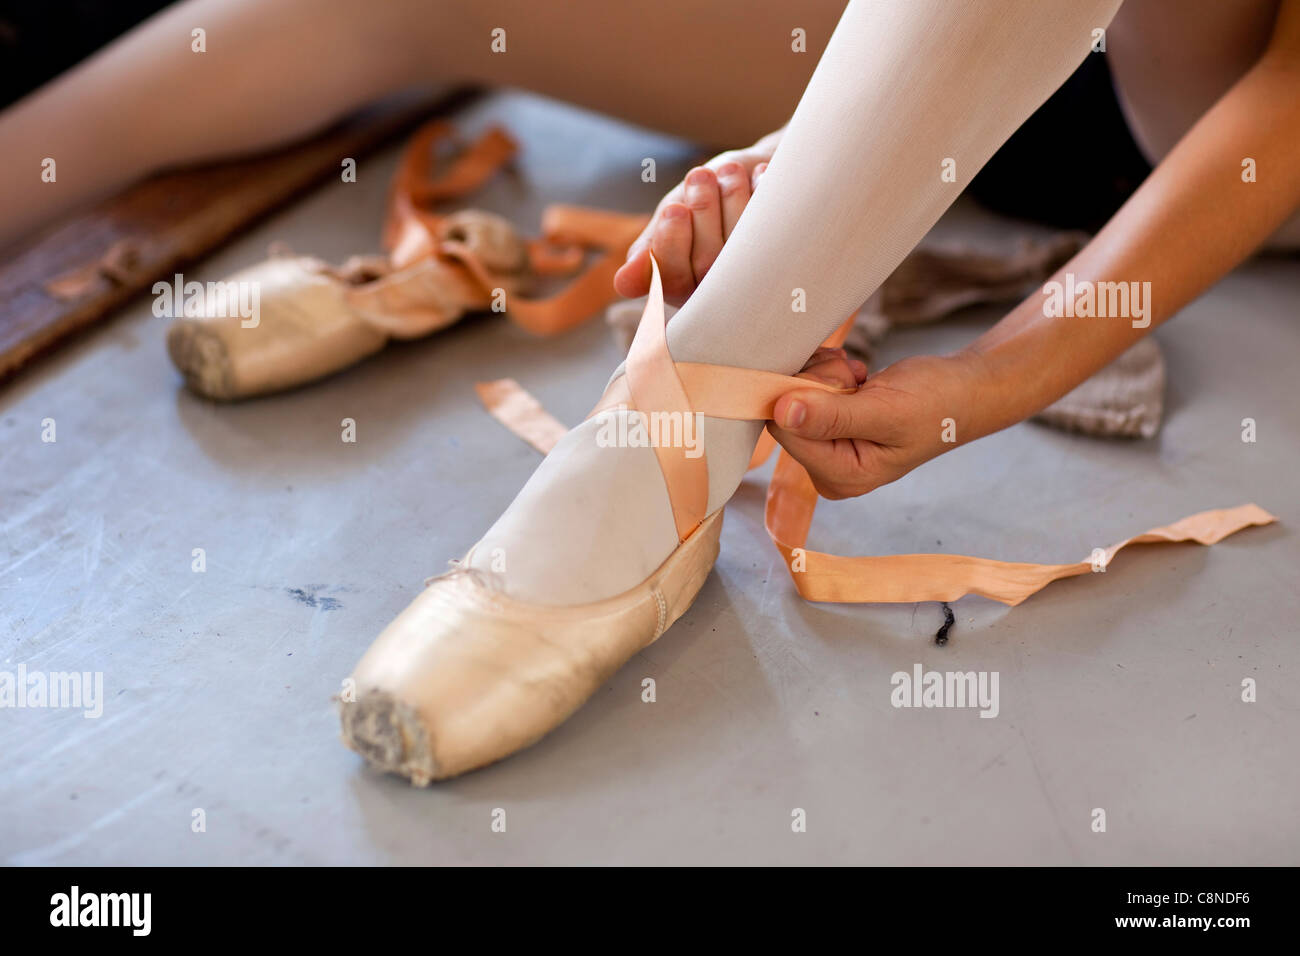 Female dancer fastening shoe laces in